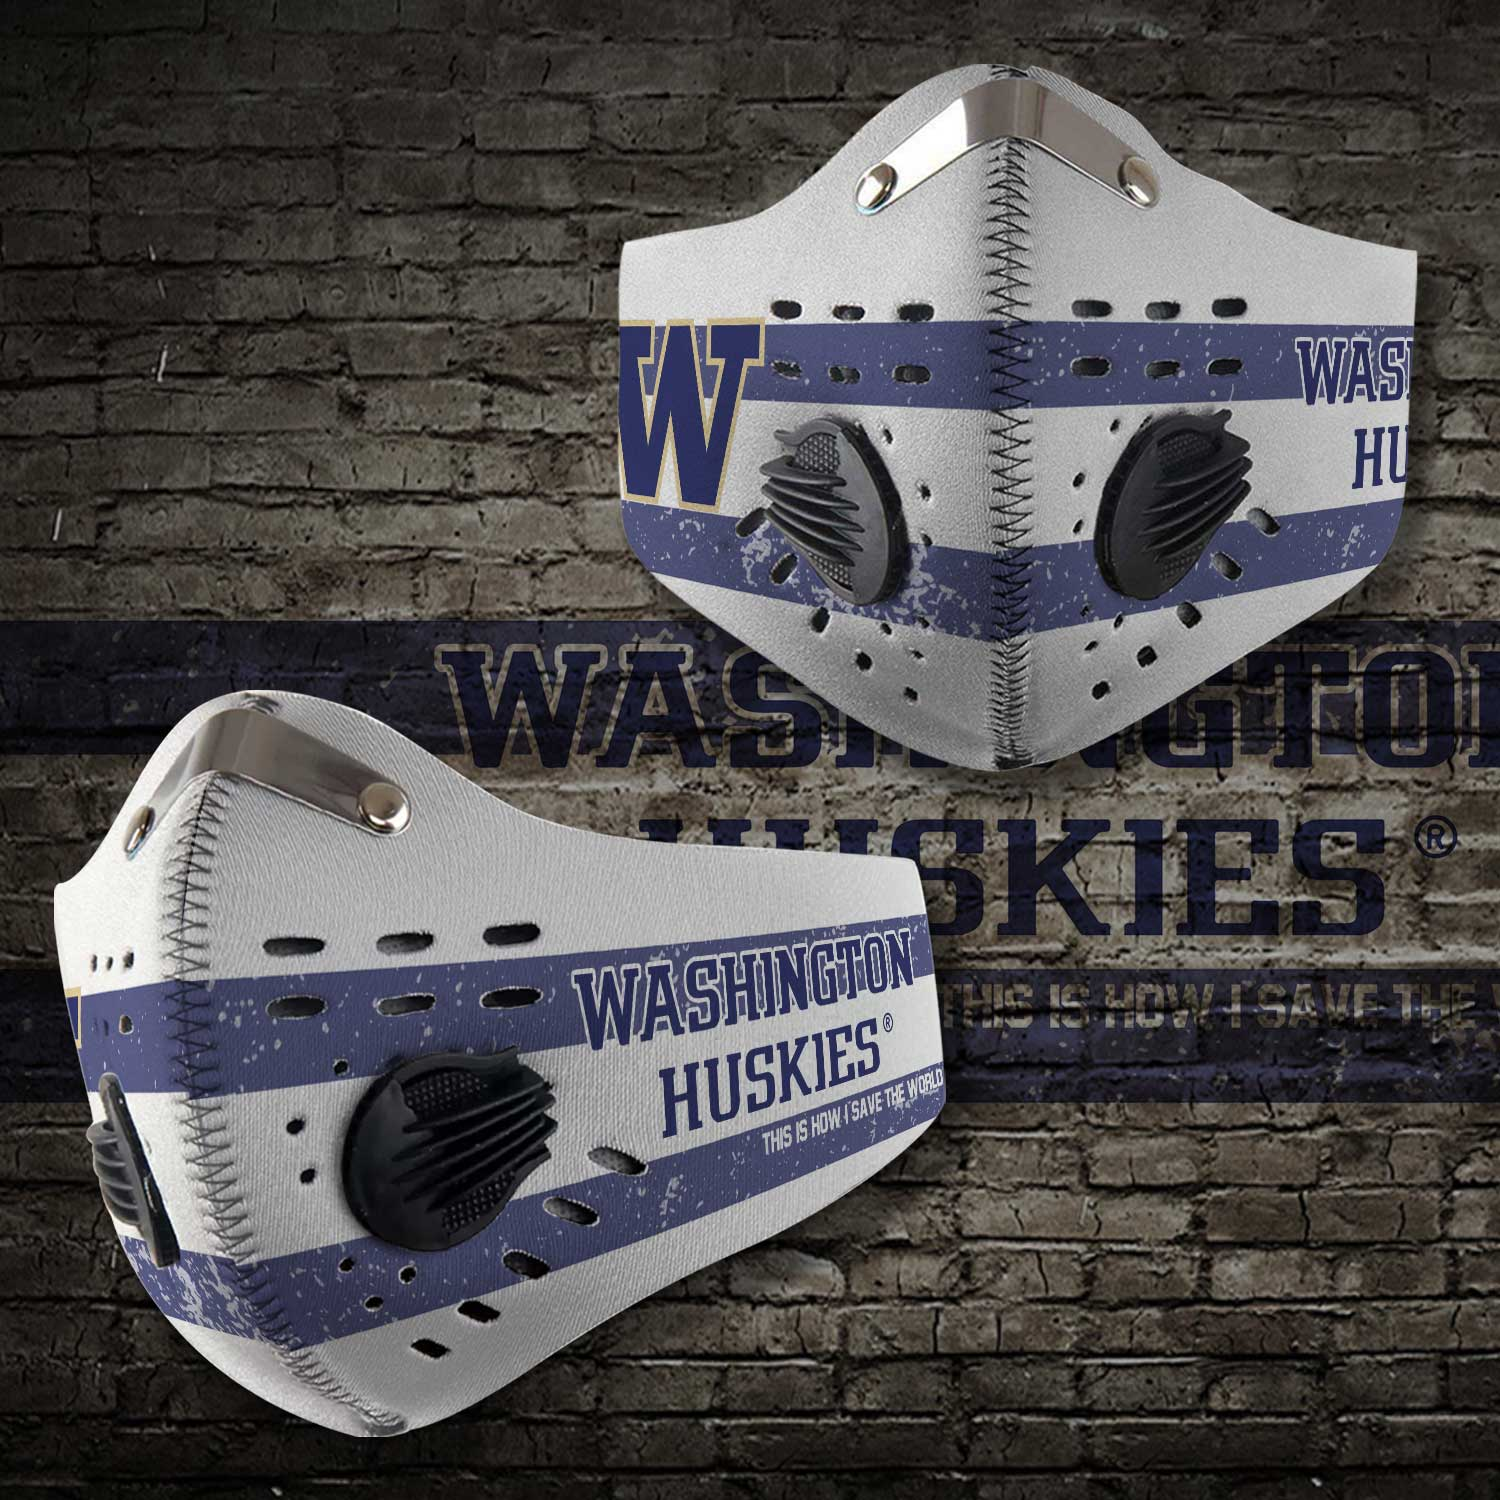 Washington huskies this is how i save the world carbon filter face mask 1